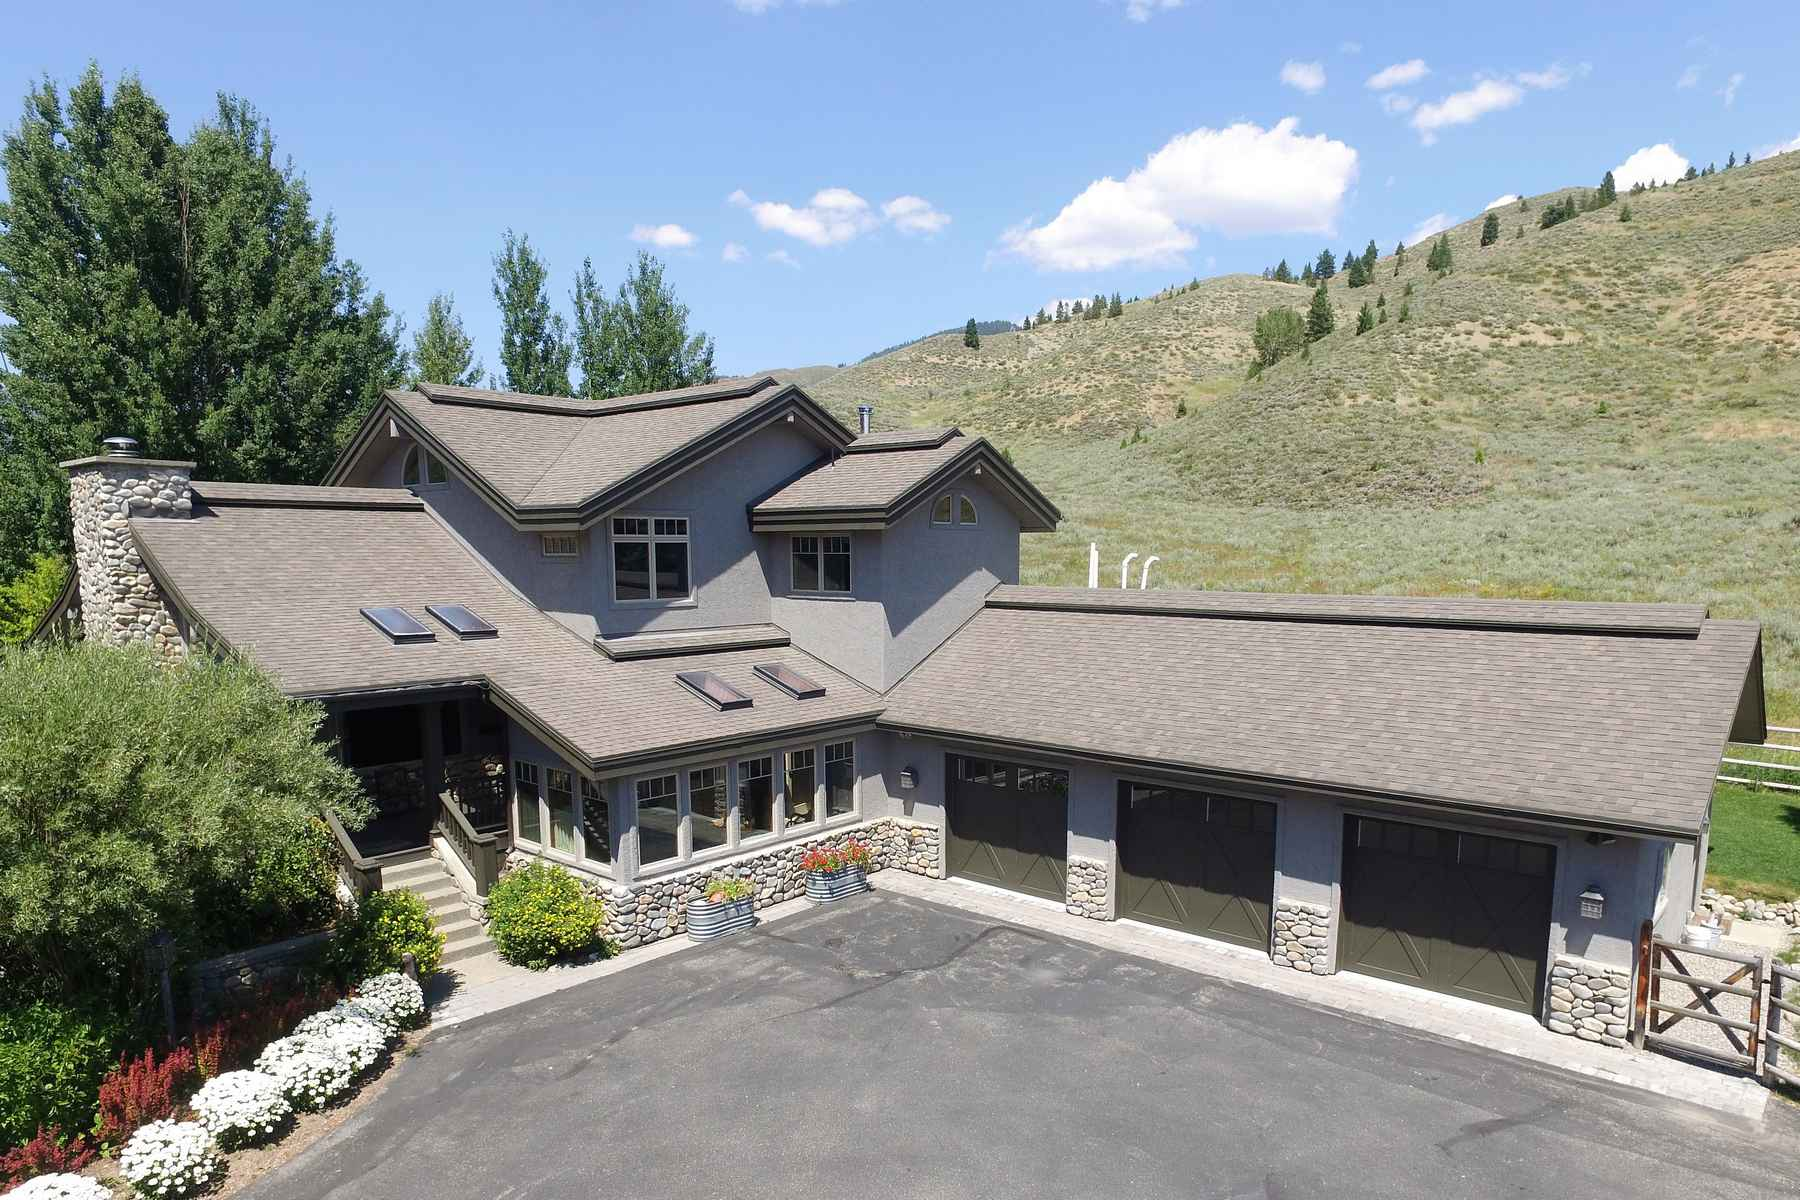 Casa Unifamiliar por un Venta en The Quintessential Idaho Home 13391 Highway 75, North Of Ketchum, Ketchum, Idaho, 83340 Estados Unidos